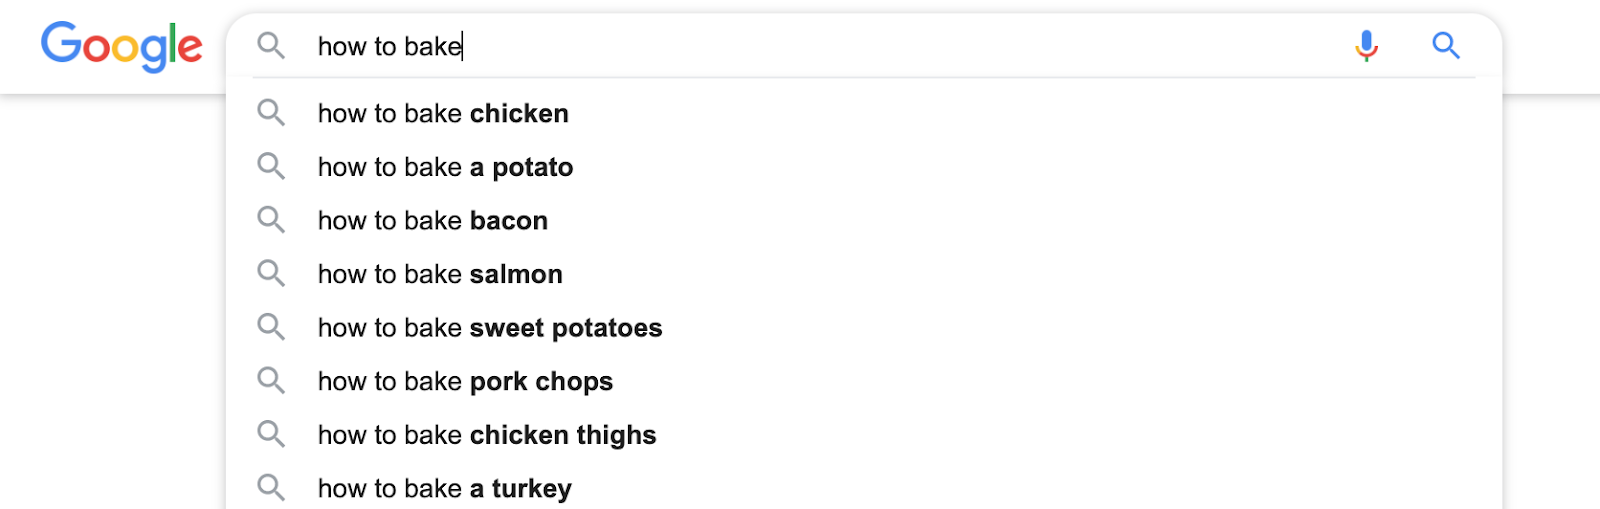 screenshot google search suggestion how to bake - search queries